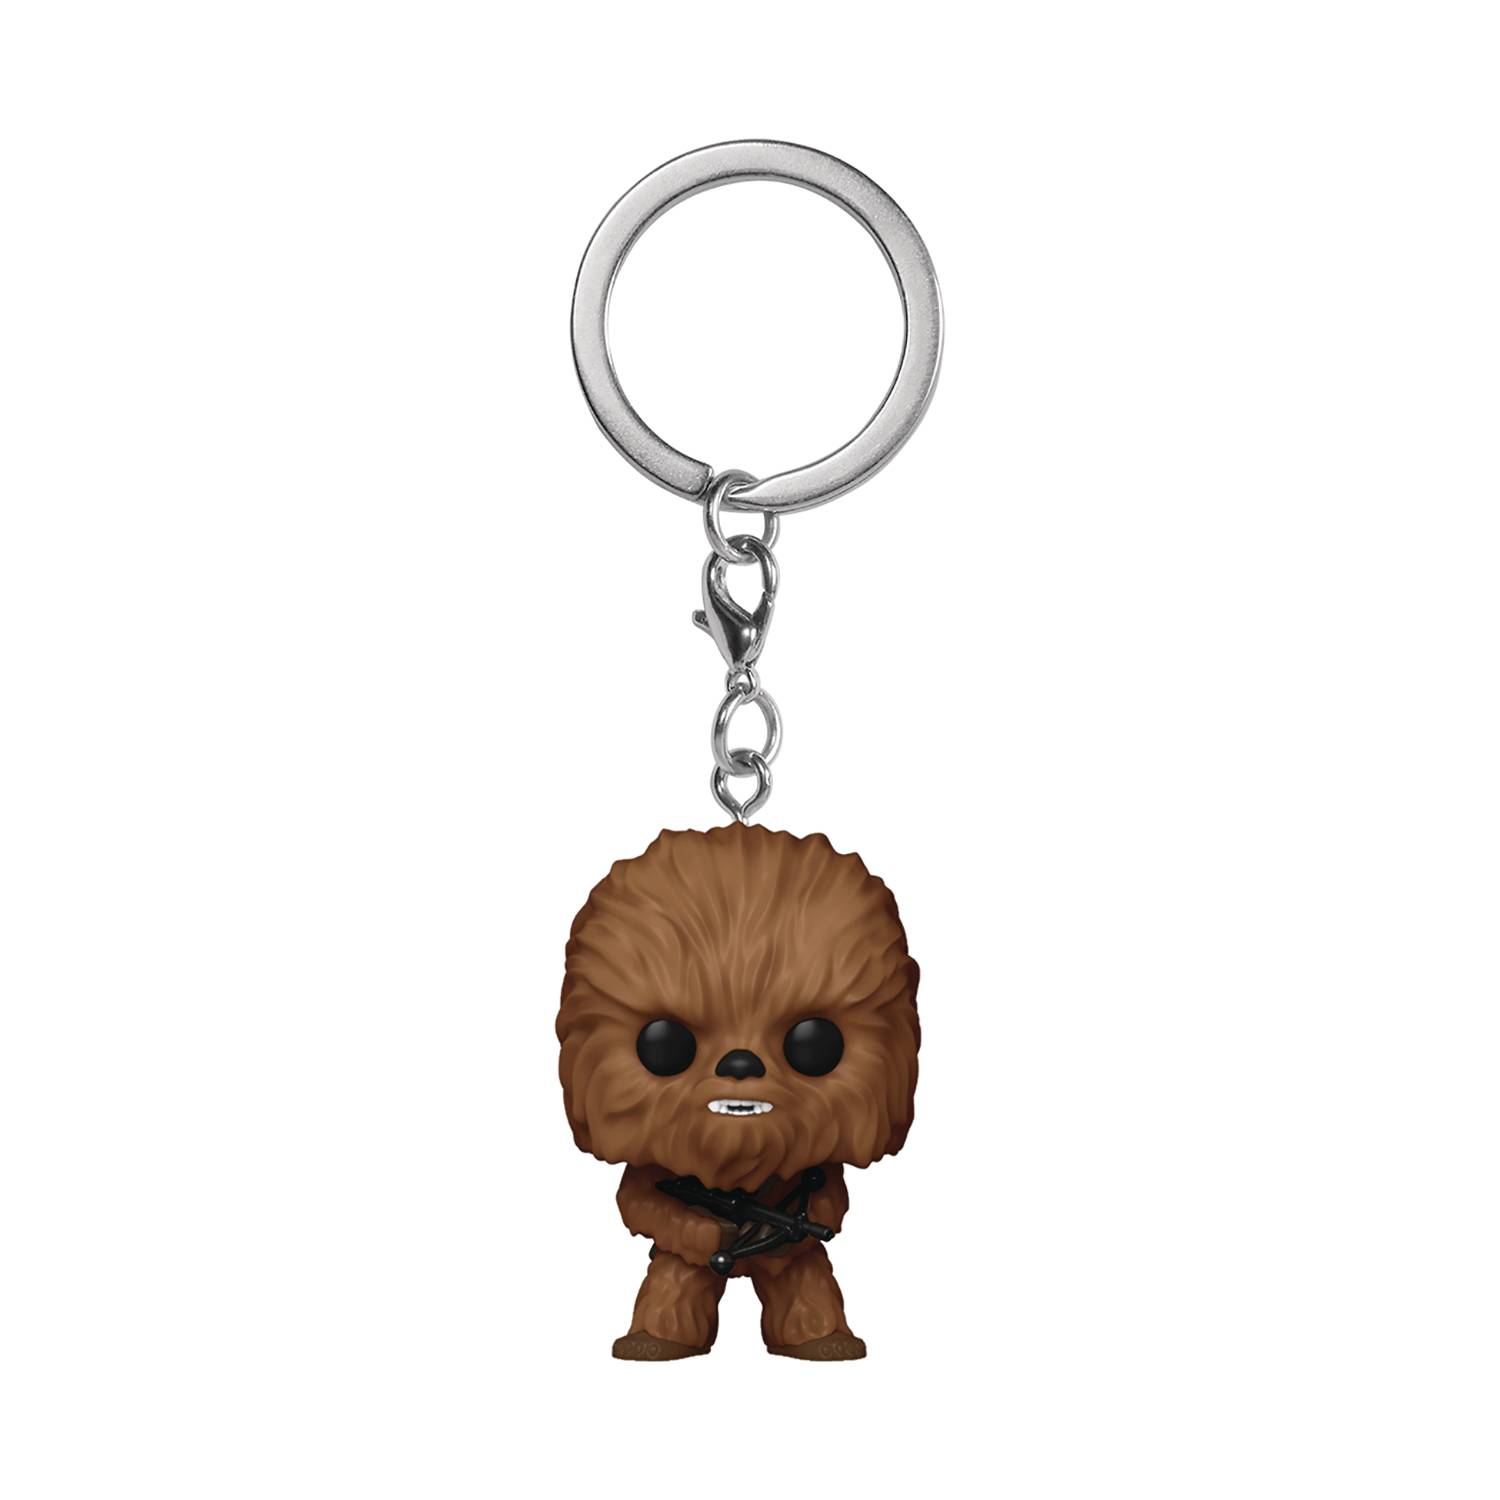 POCKET POP STAR WARS CHEWBACCA KEYCHAIN (NOV208717)